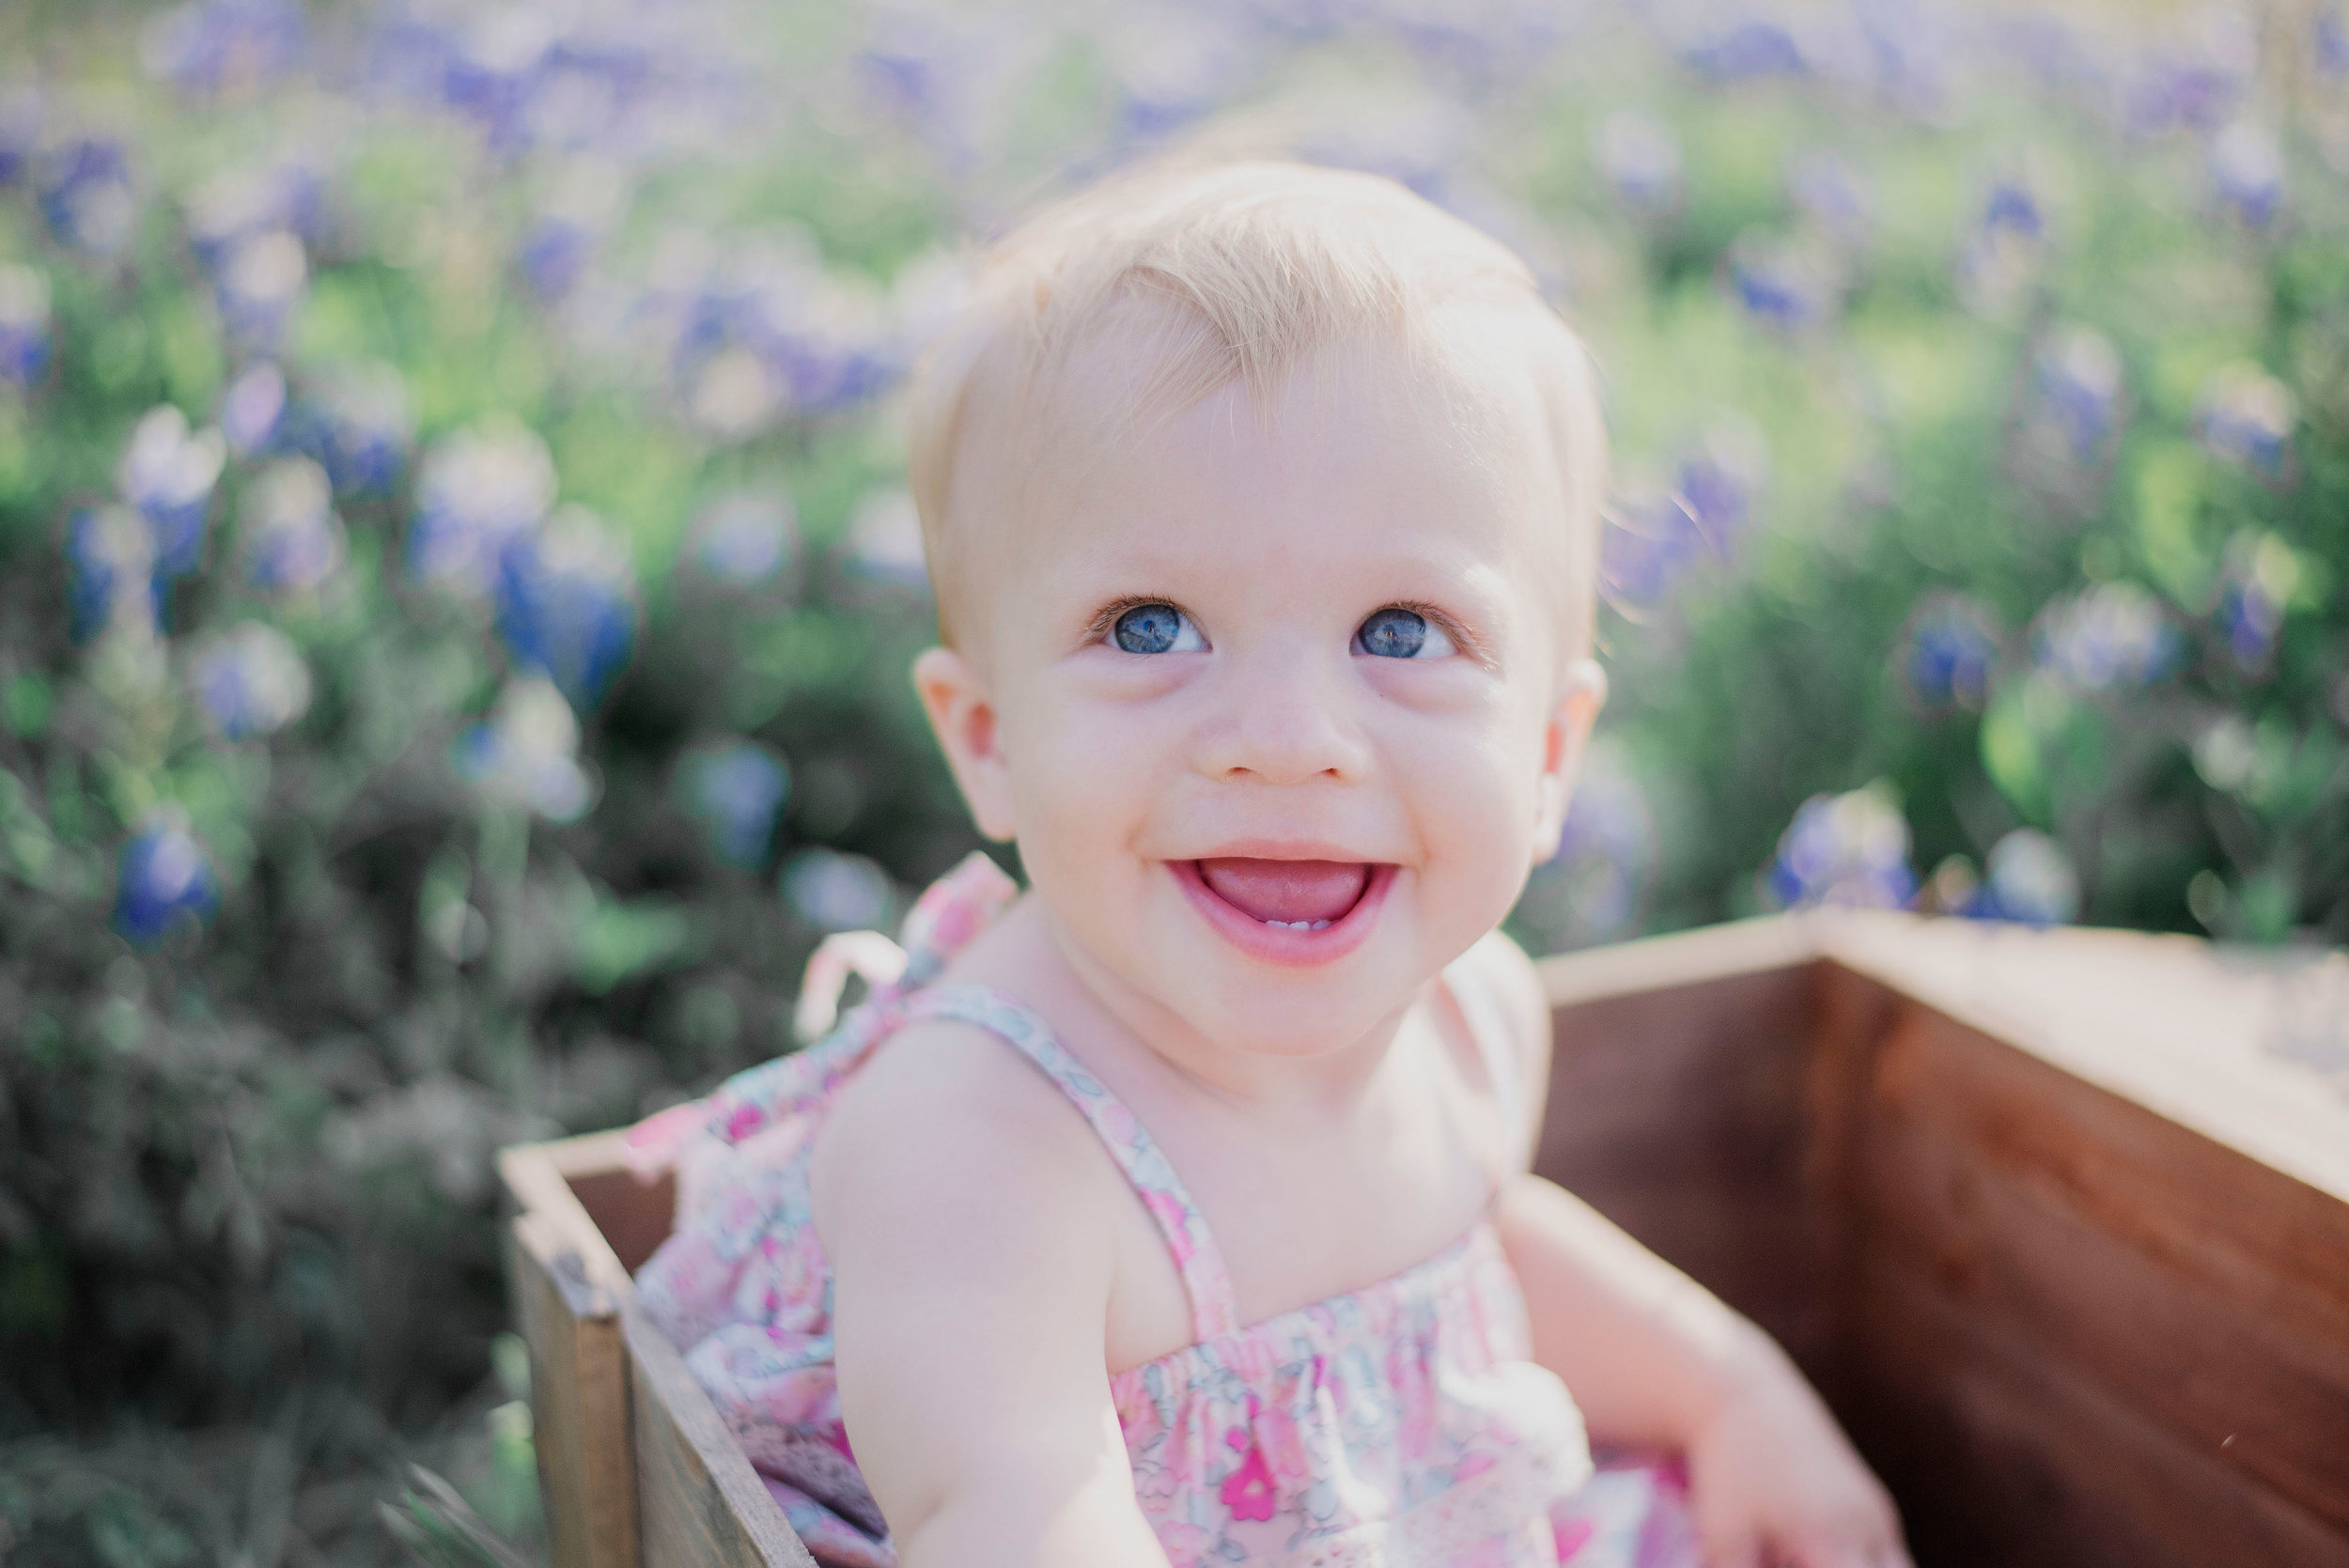 Austin Portrait Photographer First Birthday Session Texas Wildflowers Bluebonnets026.jpg